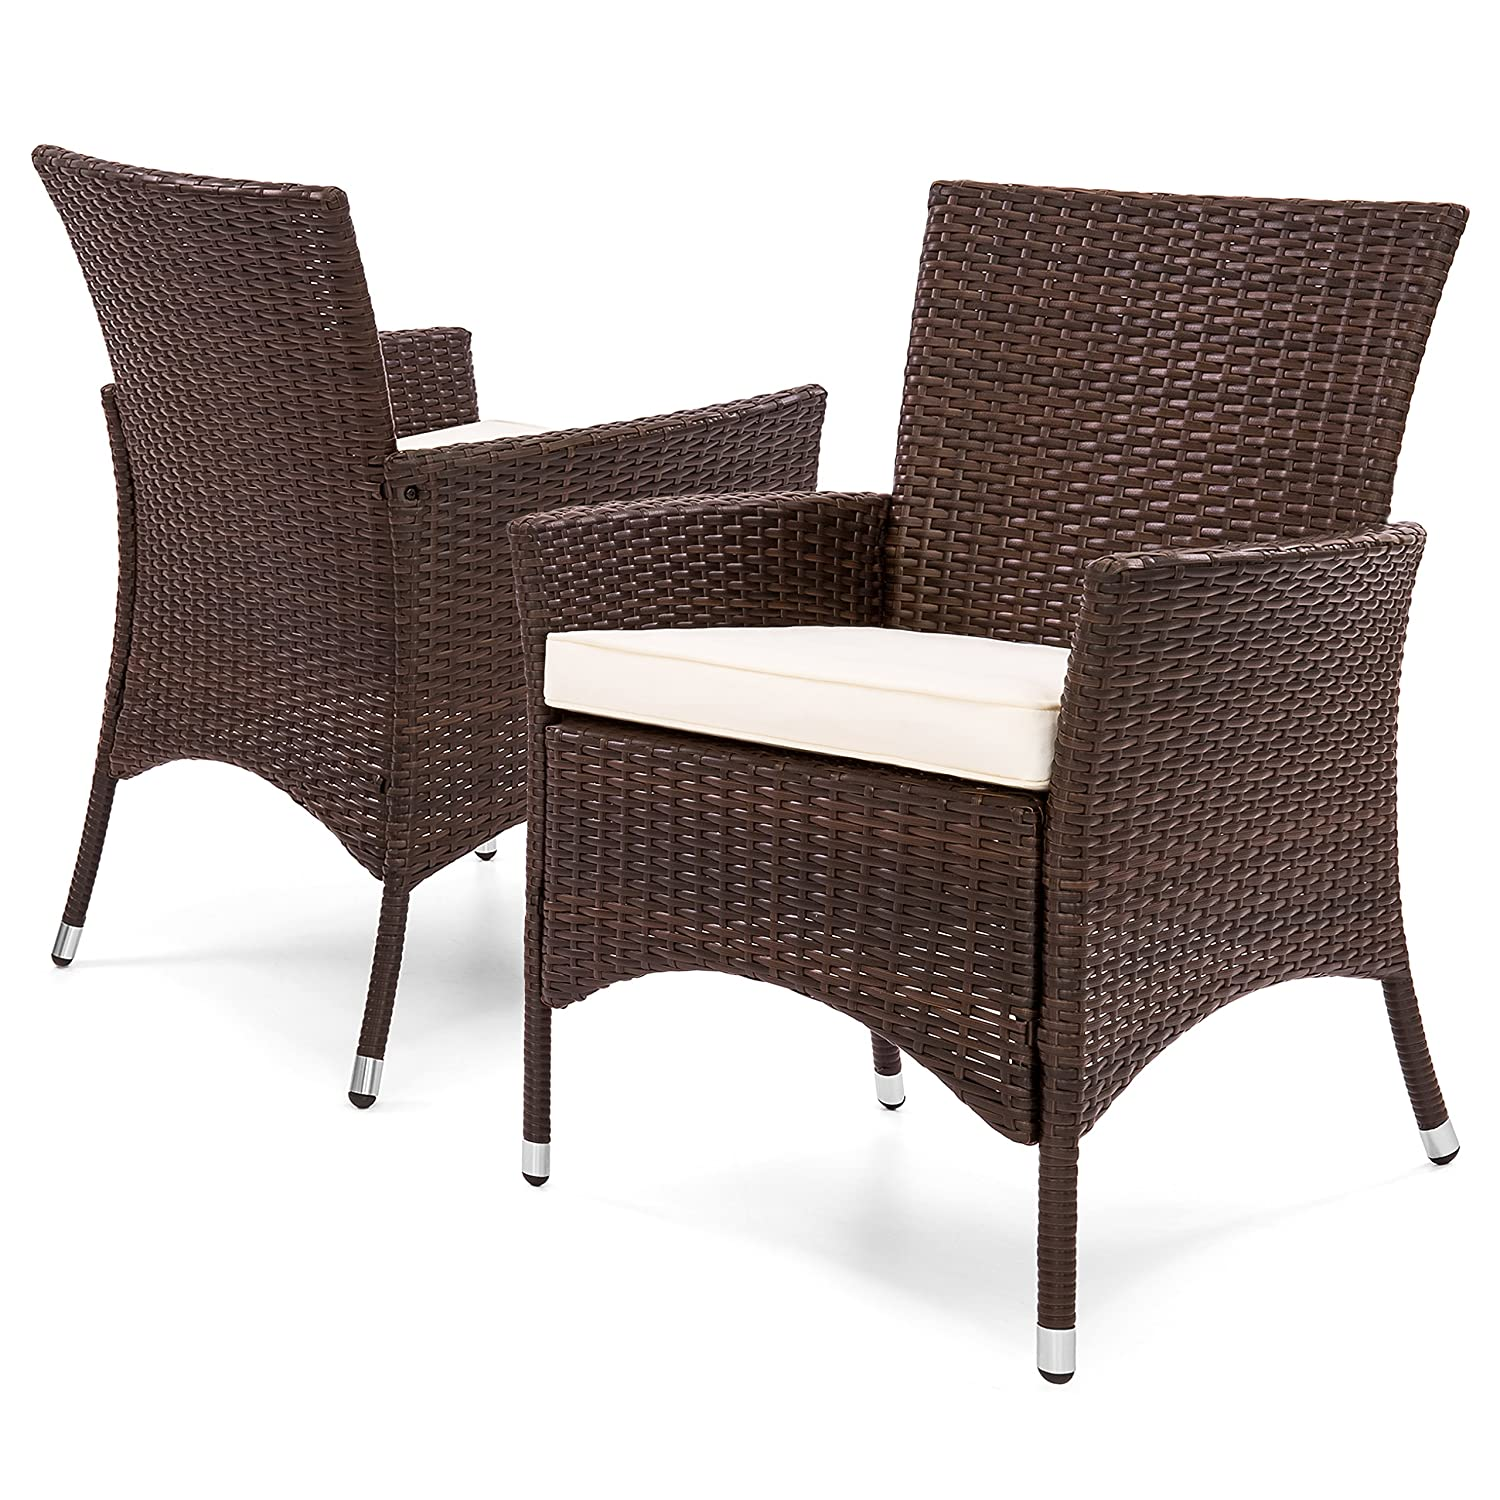 Amazon com best choice products set of 2 modern contemporary wicker patio dining chairs w water resistant cushion brown garden outdoor